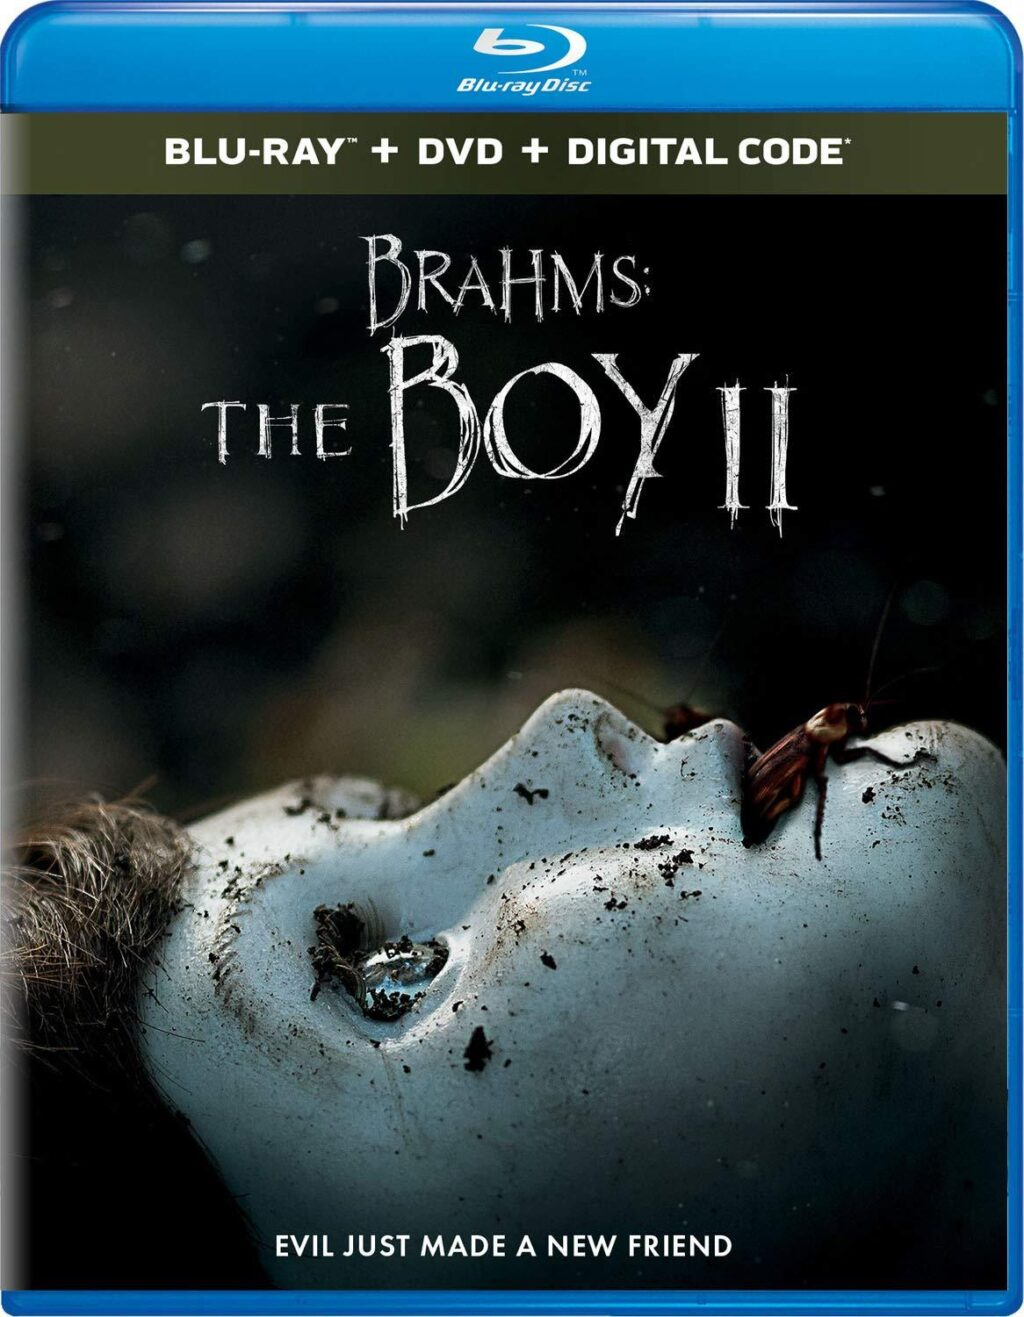 Brahms The Boy II Blu ray 1024x1317 - BRAHMS: THE BOY II Creeps Onto Blu-ray on 5/19